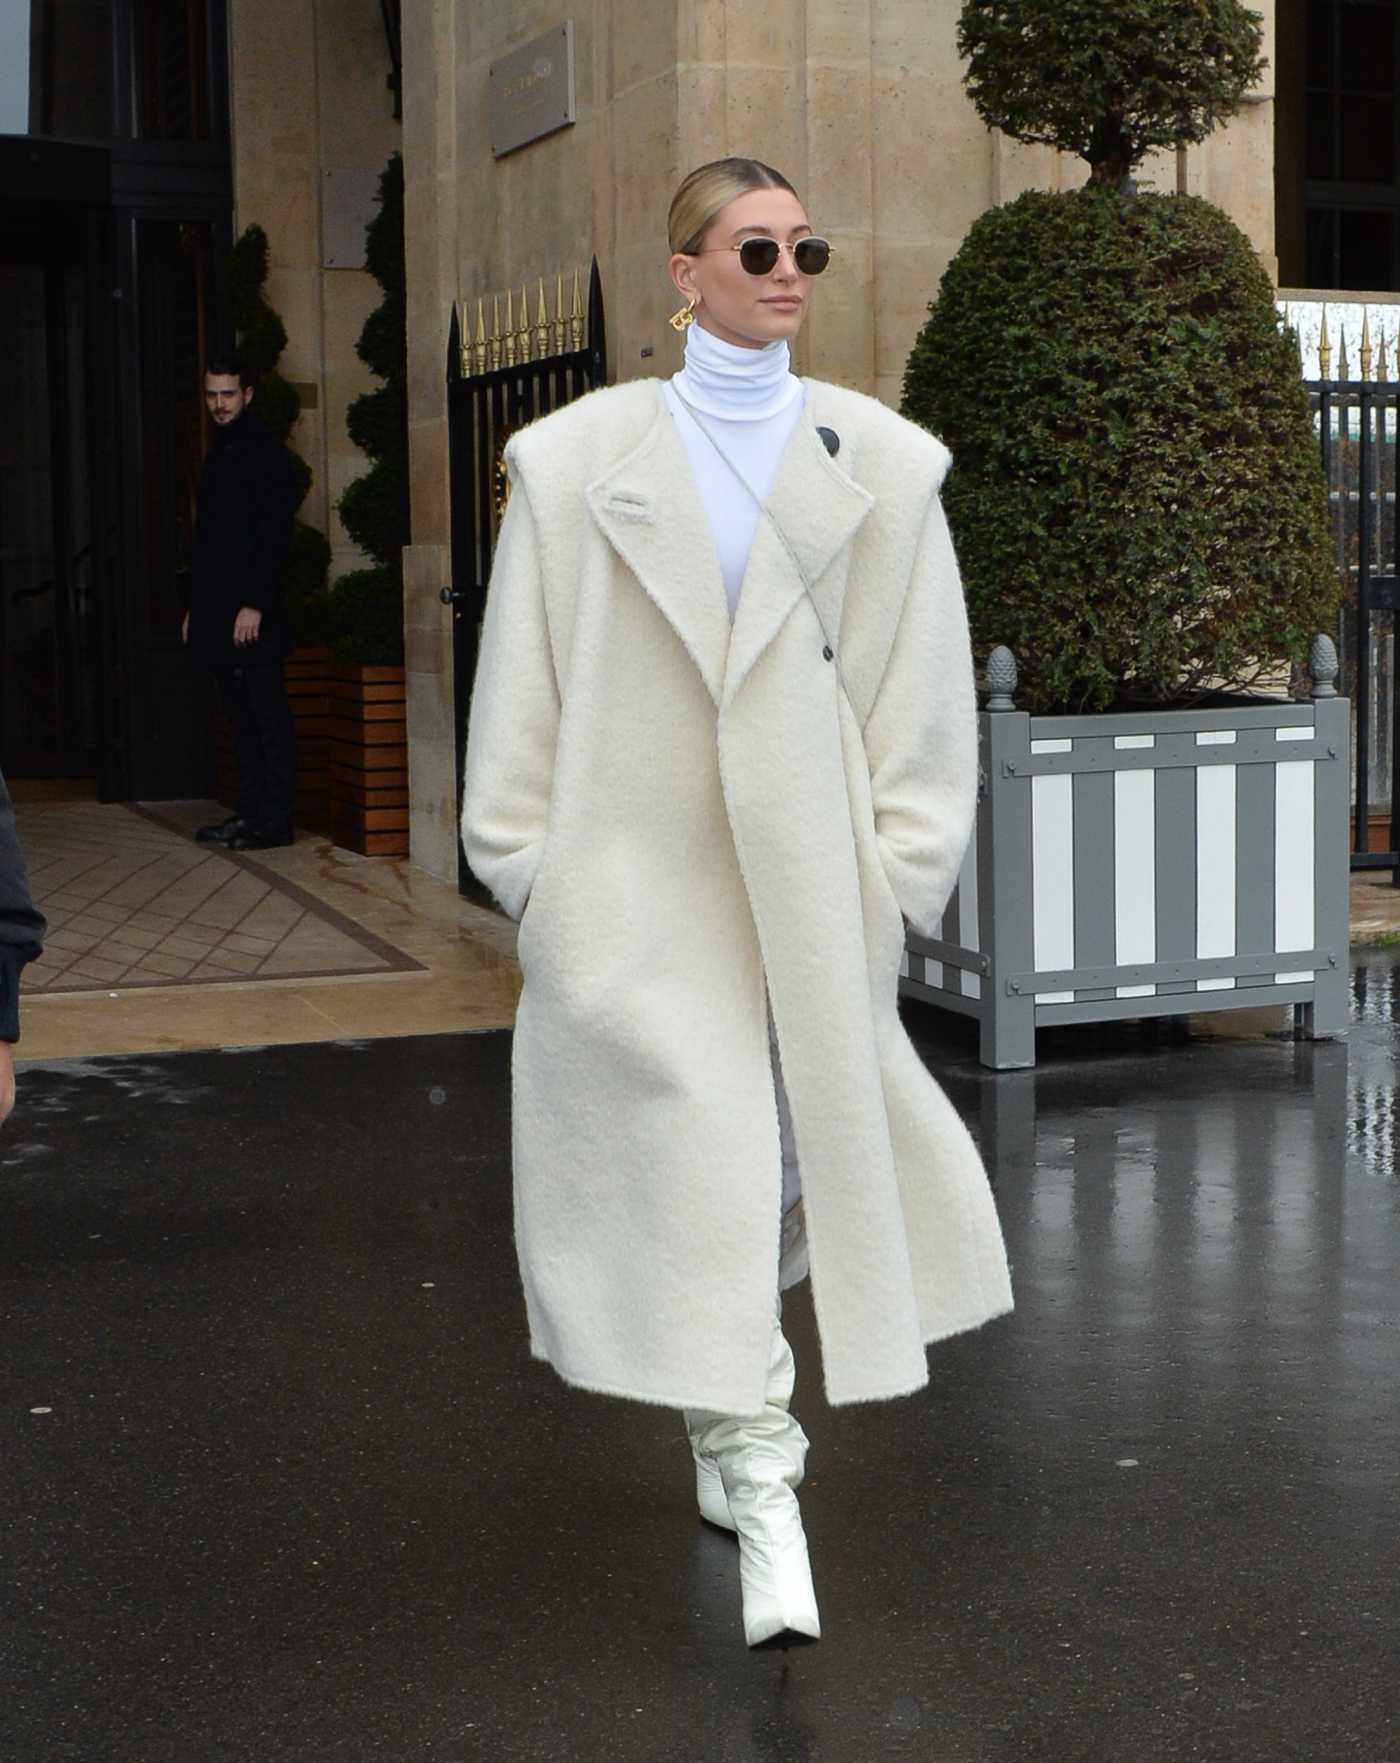 Hailey Baldwin in a Beige Coat Leaves Her Hotel in Paris 02/27/2020